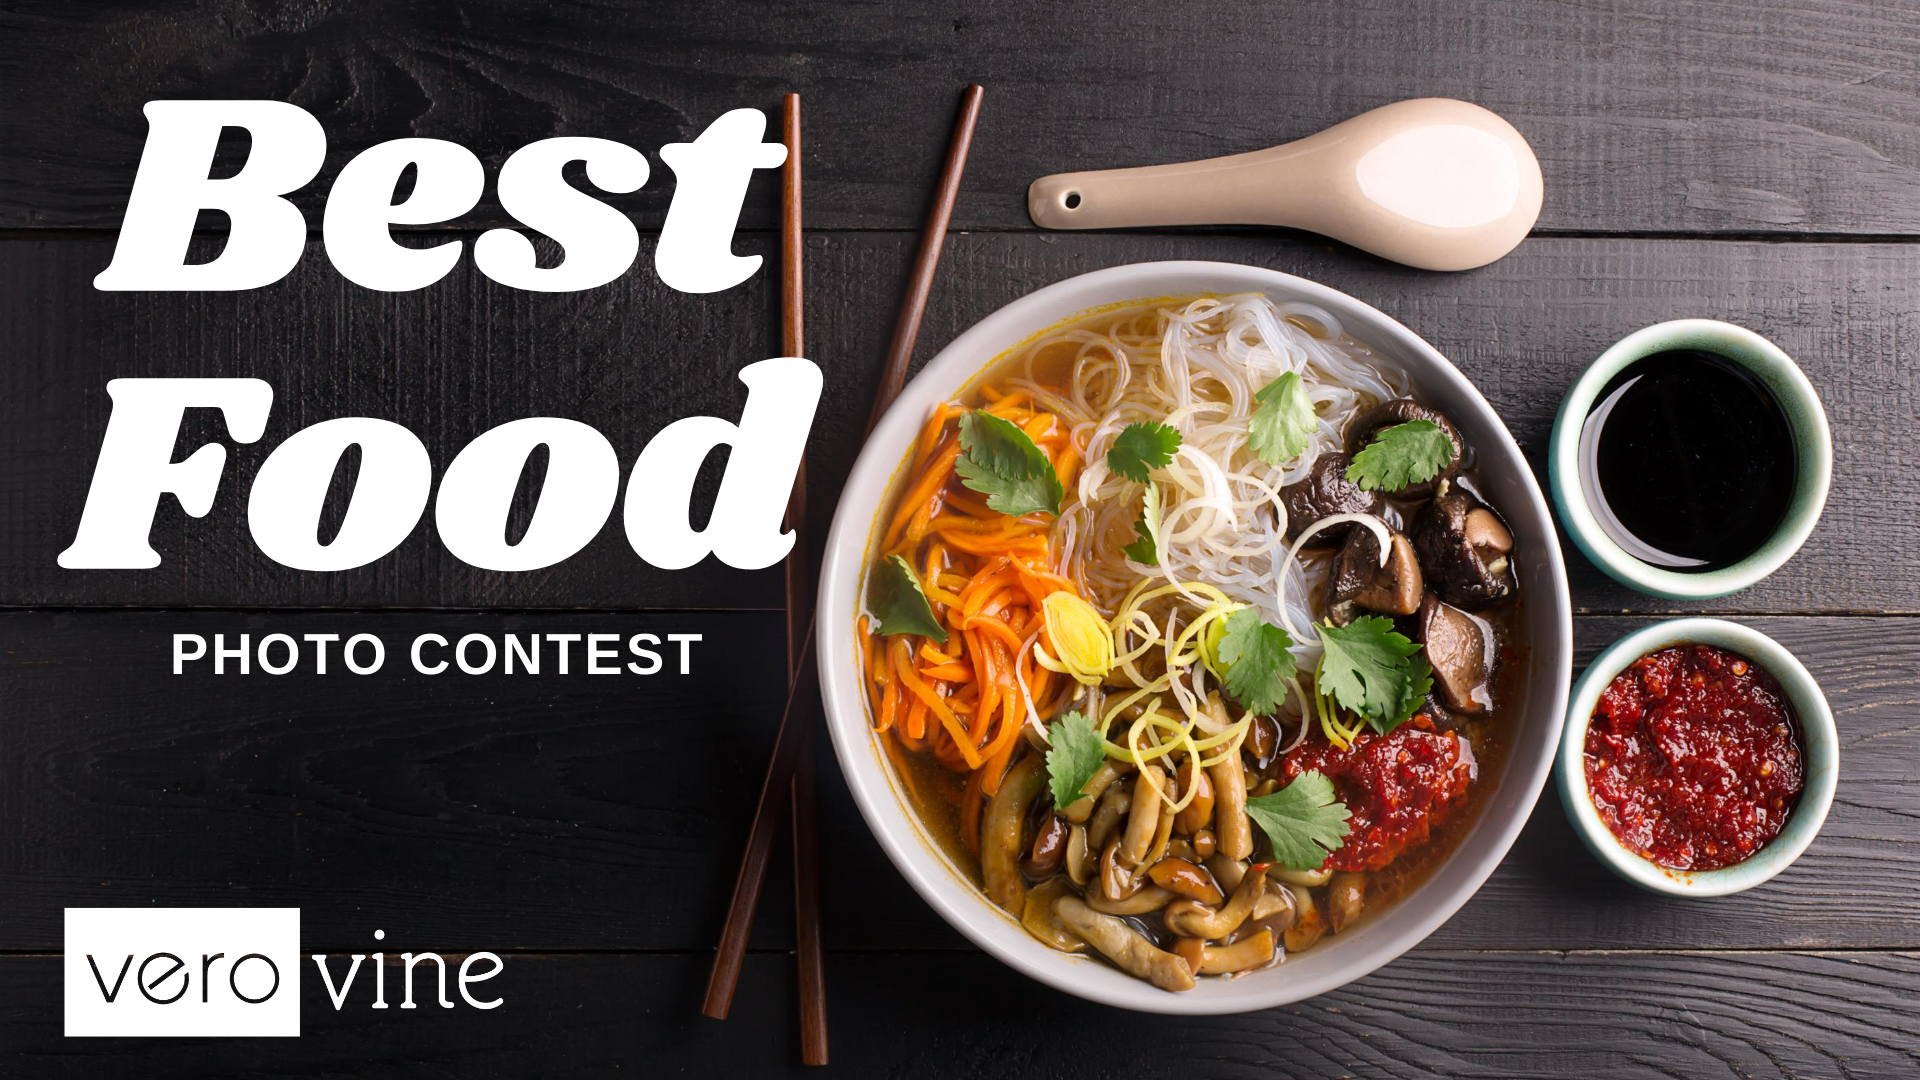 Best Food Photo Contest